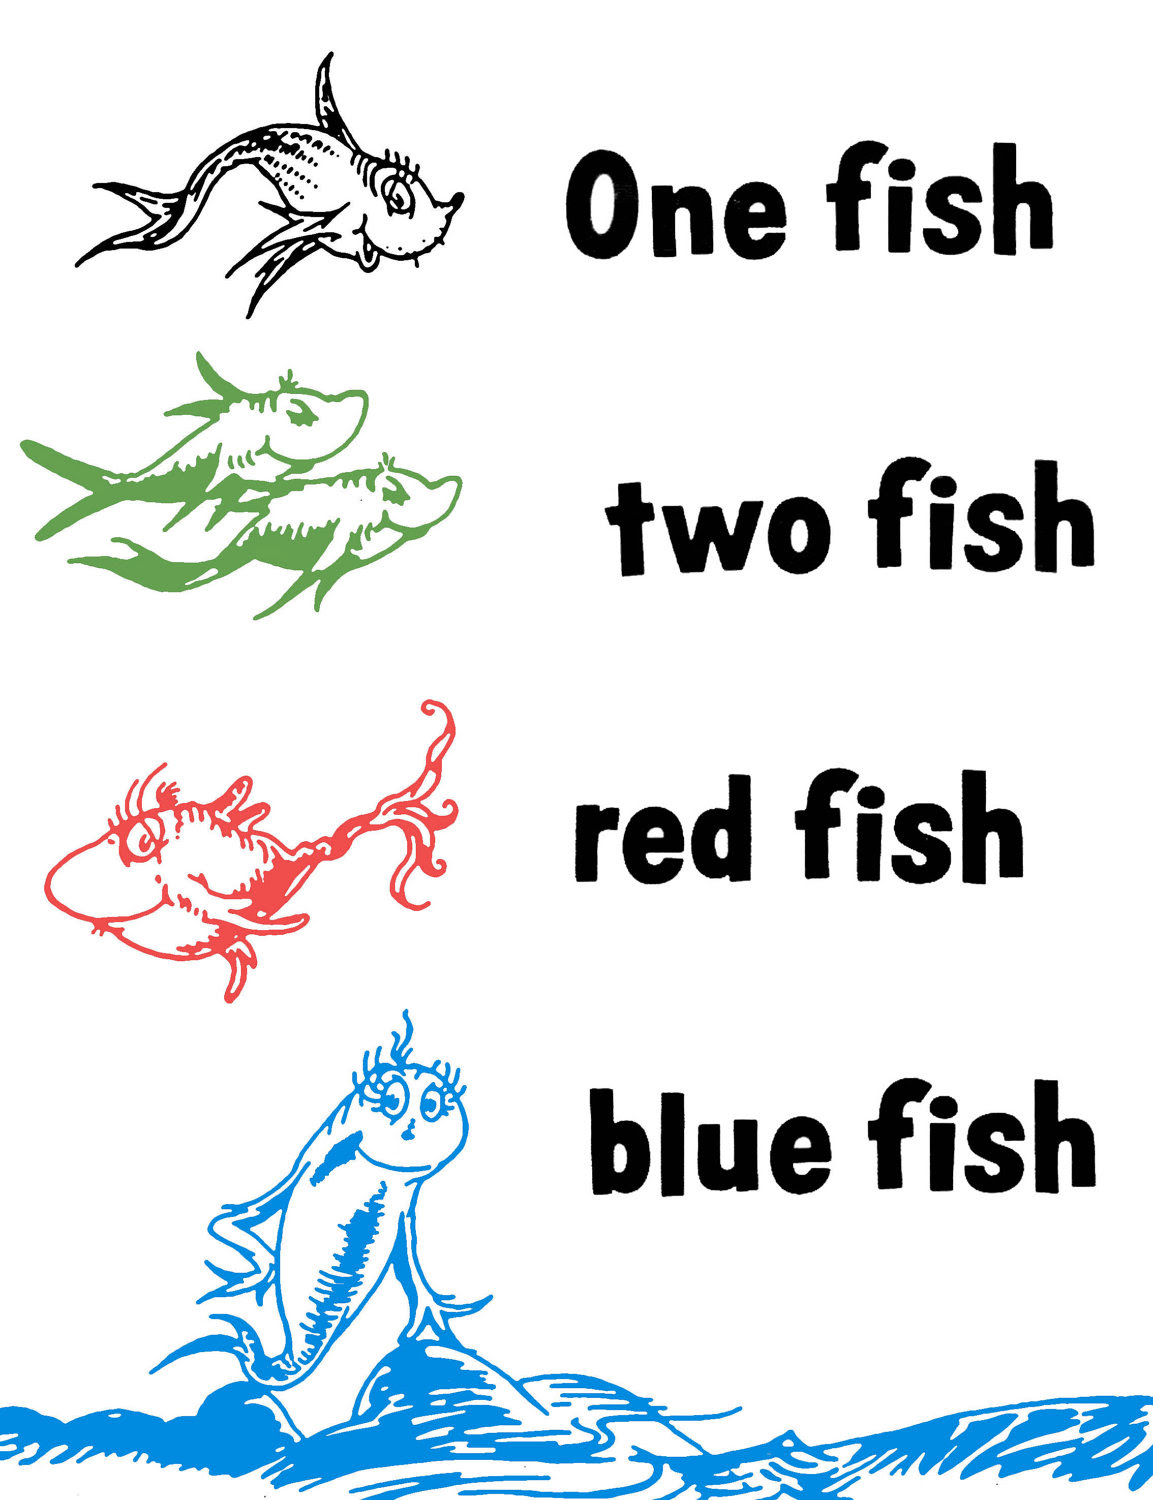 6 Best Images of Red Fish Blue Fish Printables - One Fish ...